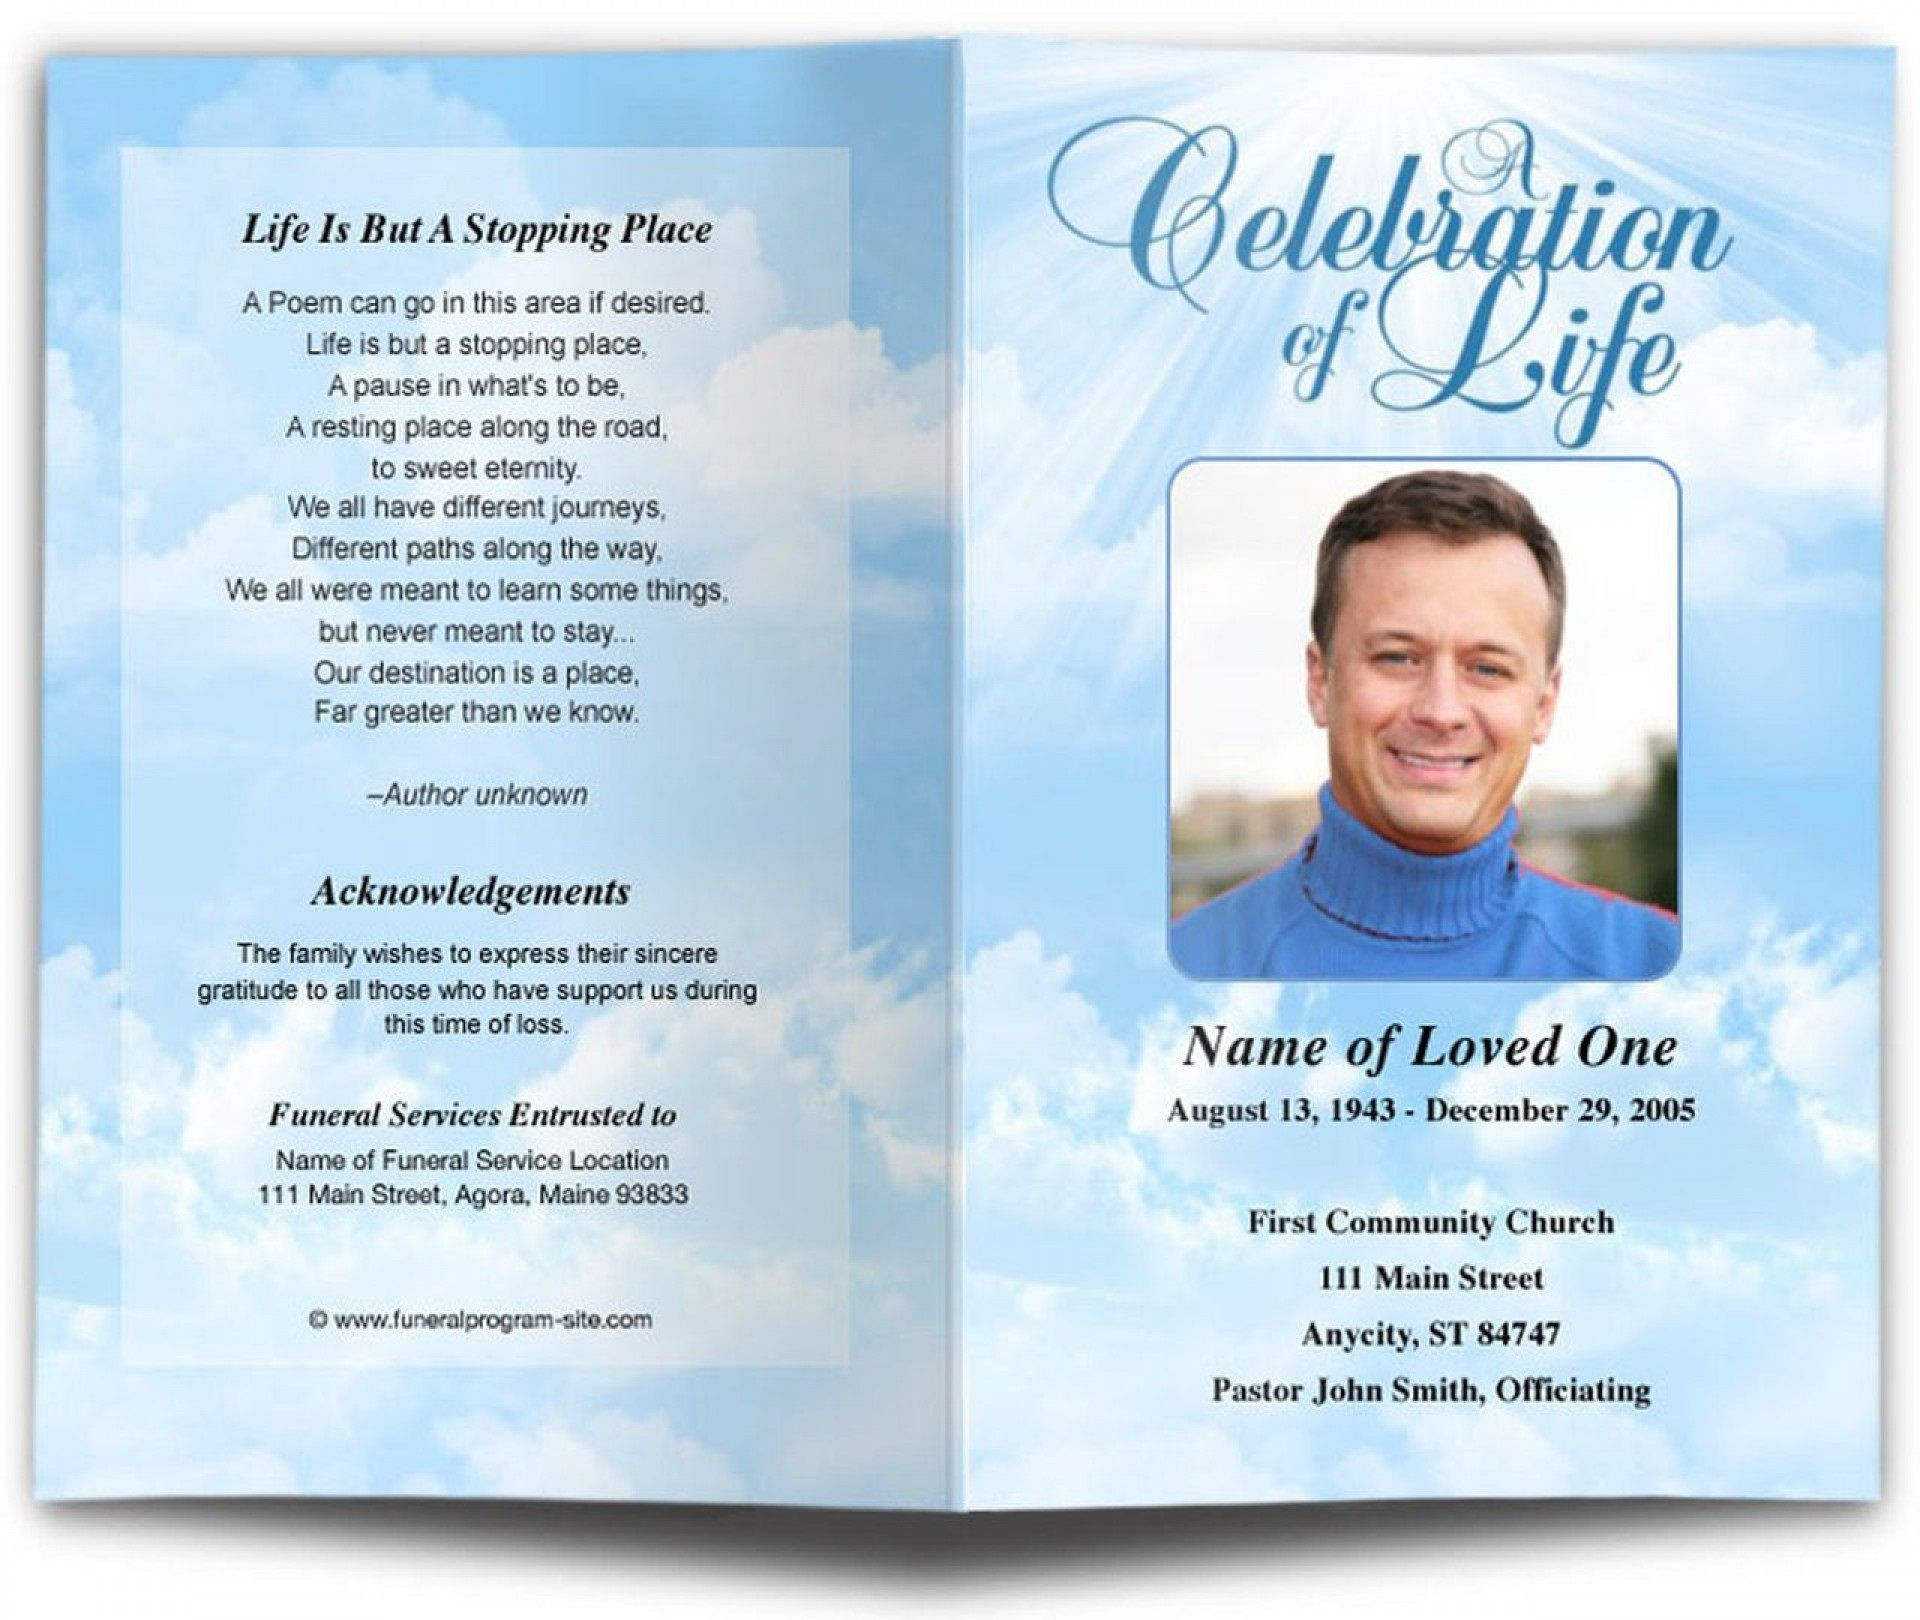 002 Awesome Celebration Of Life Word Template Free Highest Quality  Program1920